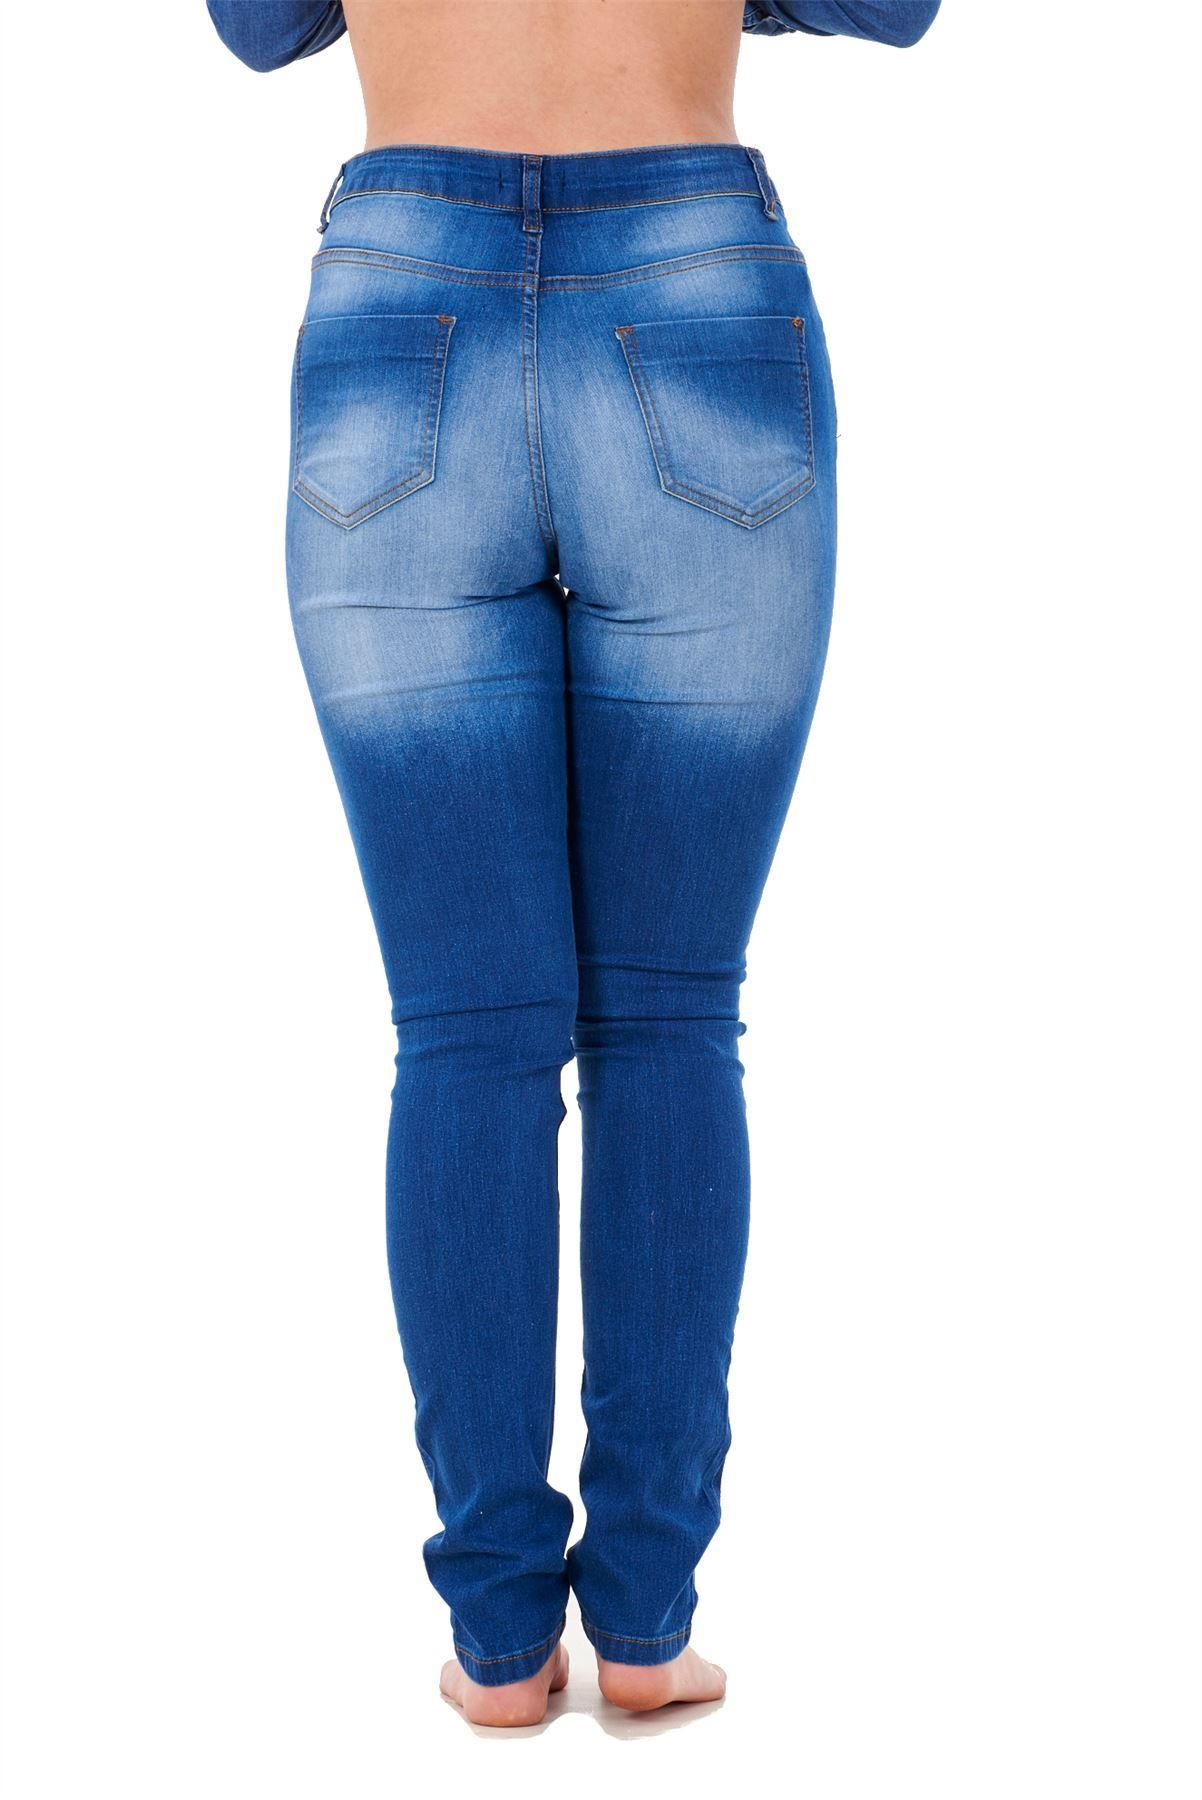 Ladies-Stretch-Jeans-Denim-cotton-Zip-fly-High-Waisted-Slim-Fit-Trousers-Pants thumbnail 9